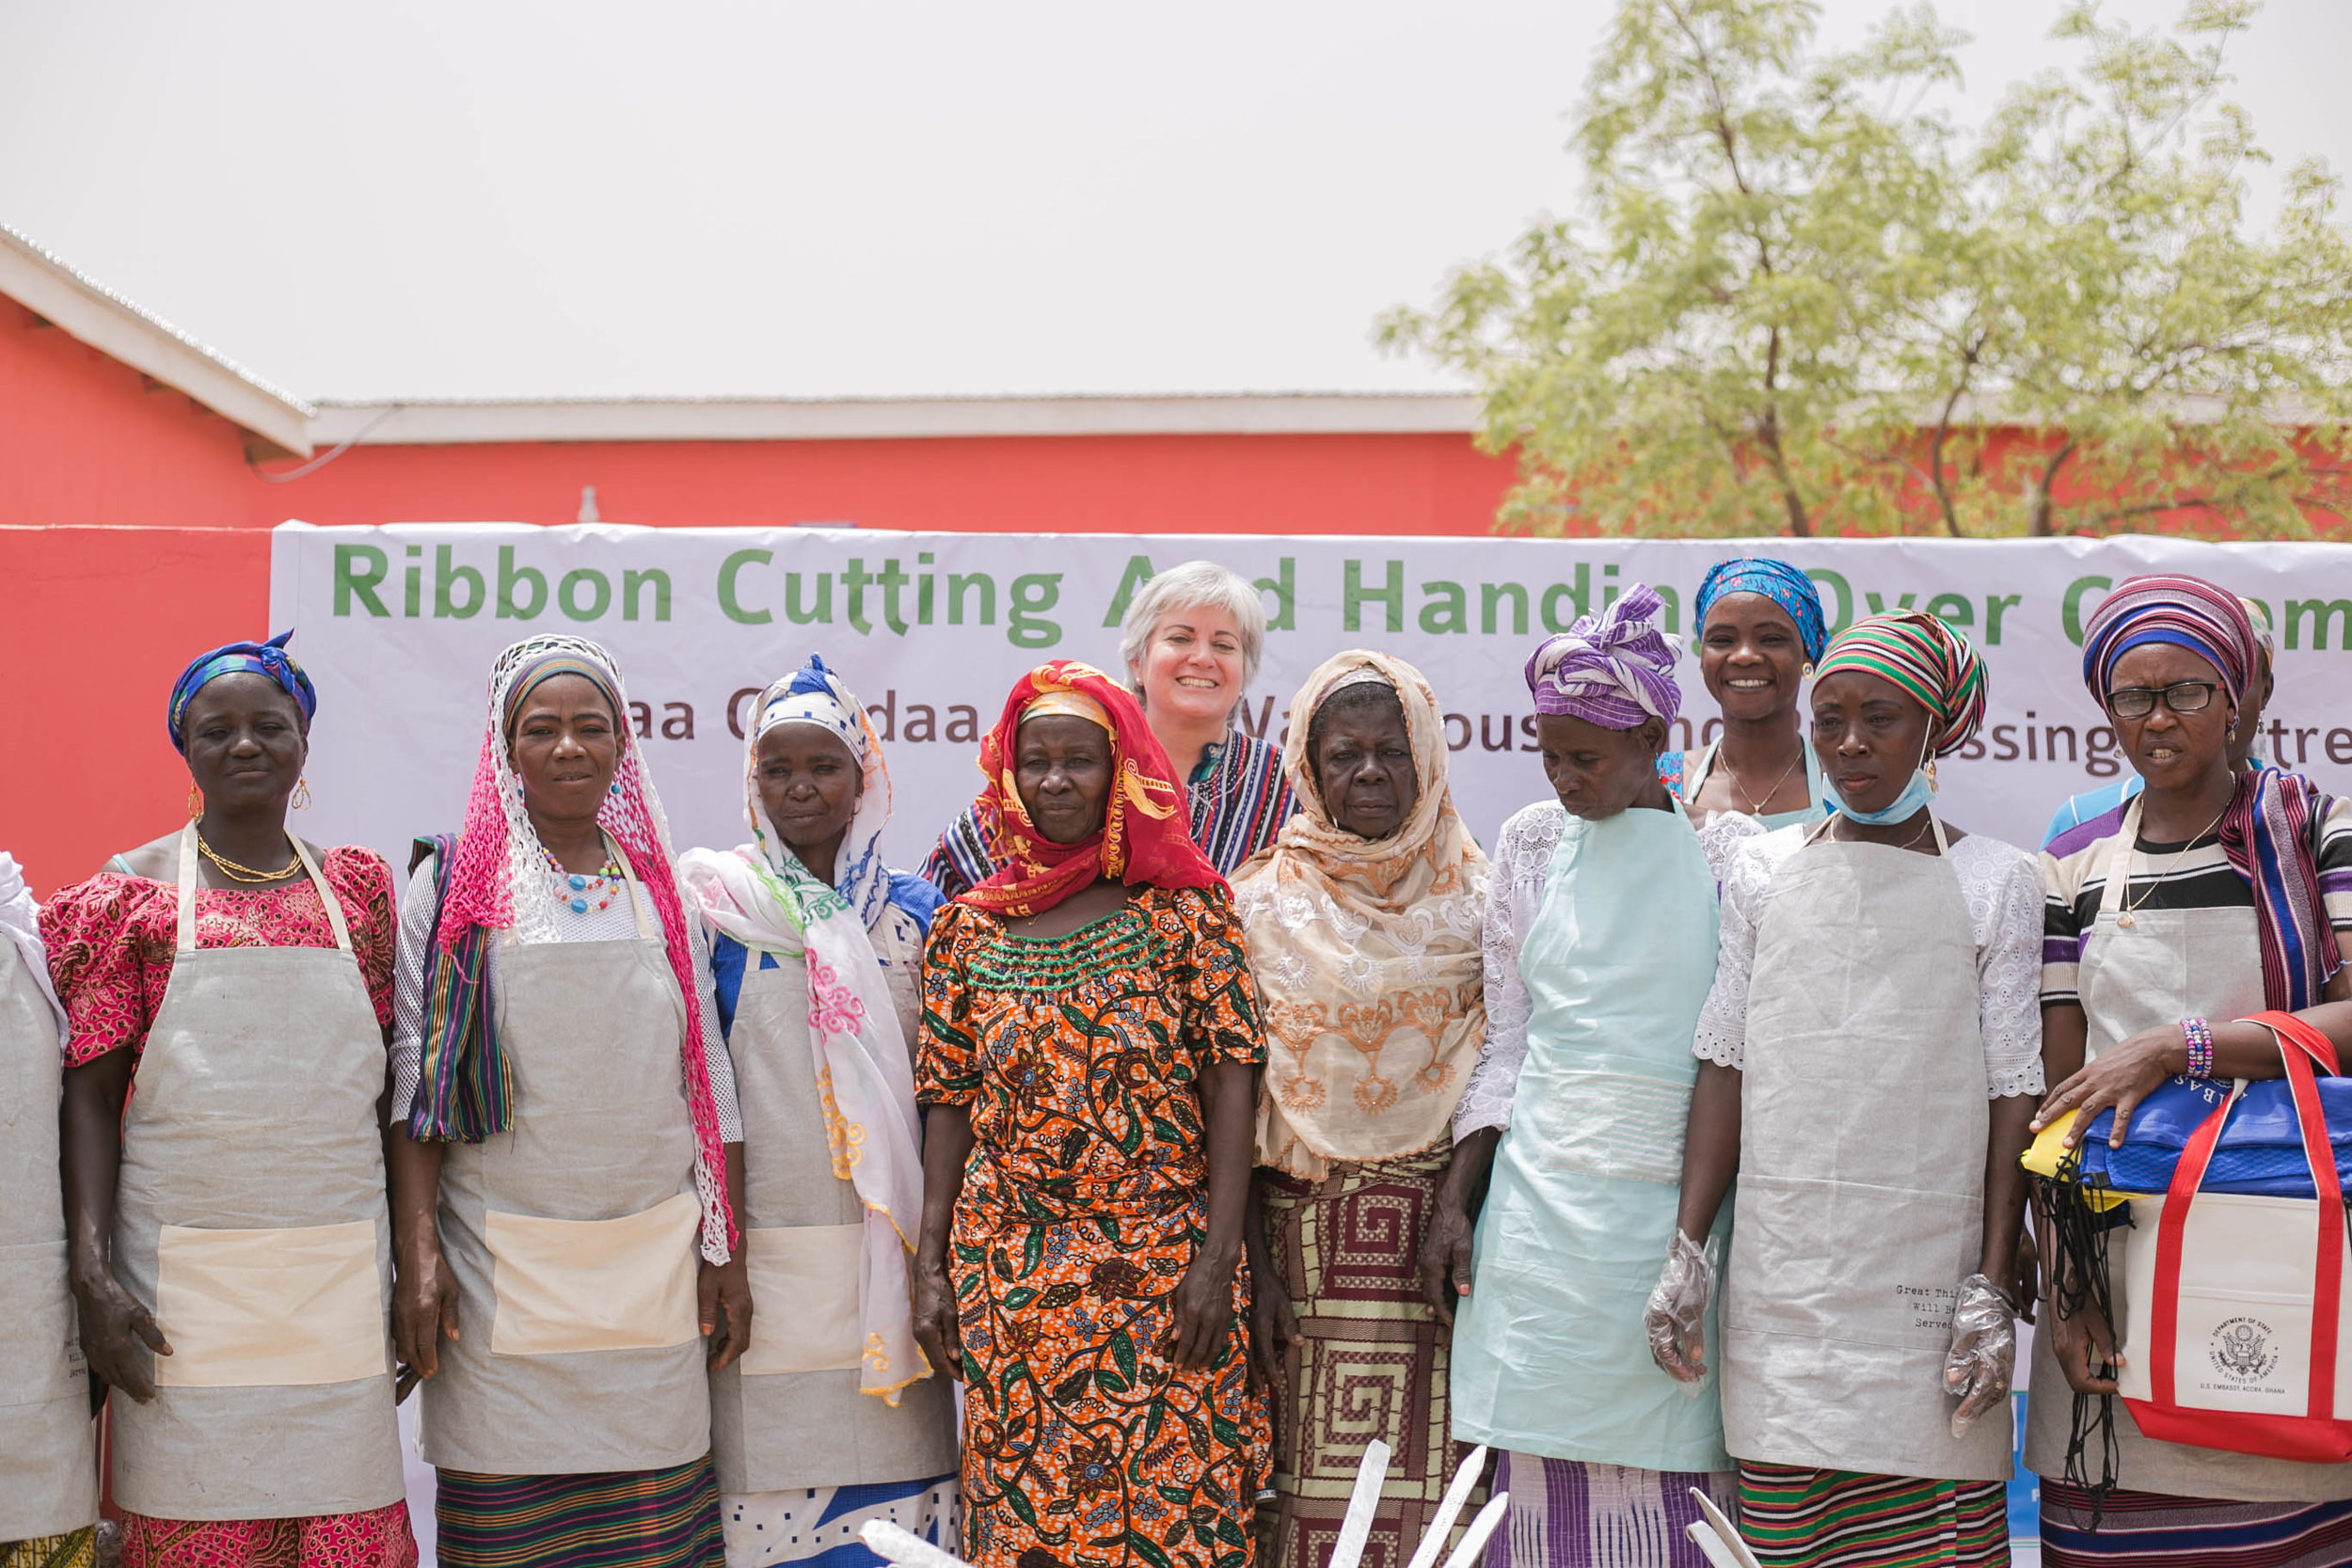 Women in the Gizaa Gundaa community in Ghana at the Posh pink Shea Sisterhood warehouse ribbon cutting ceremony